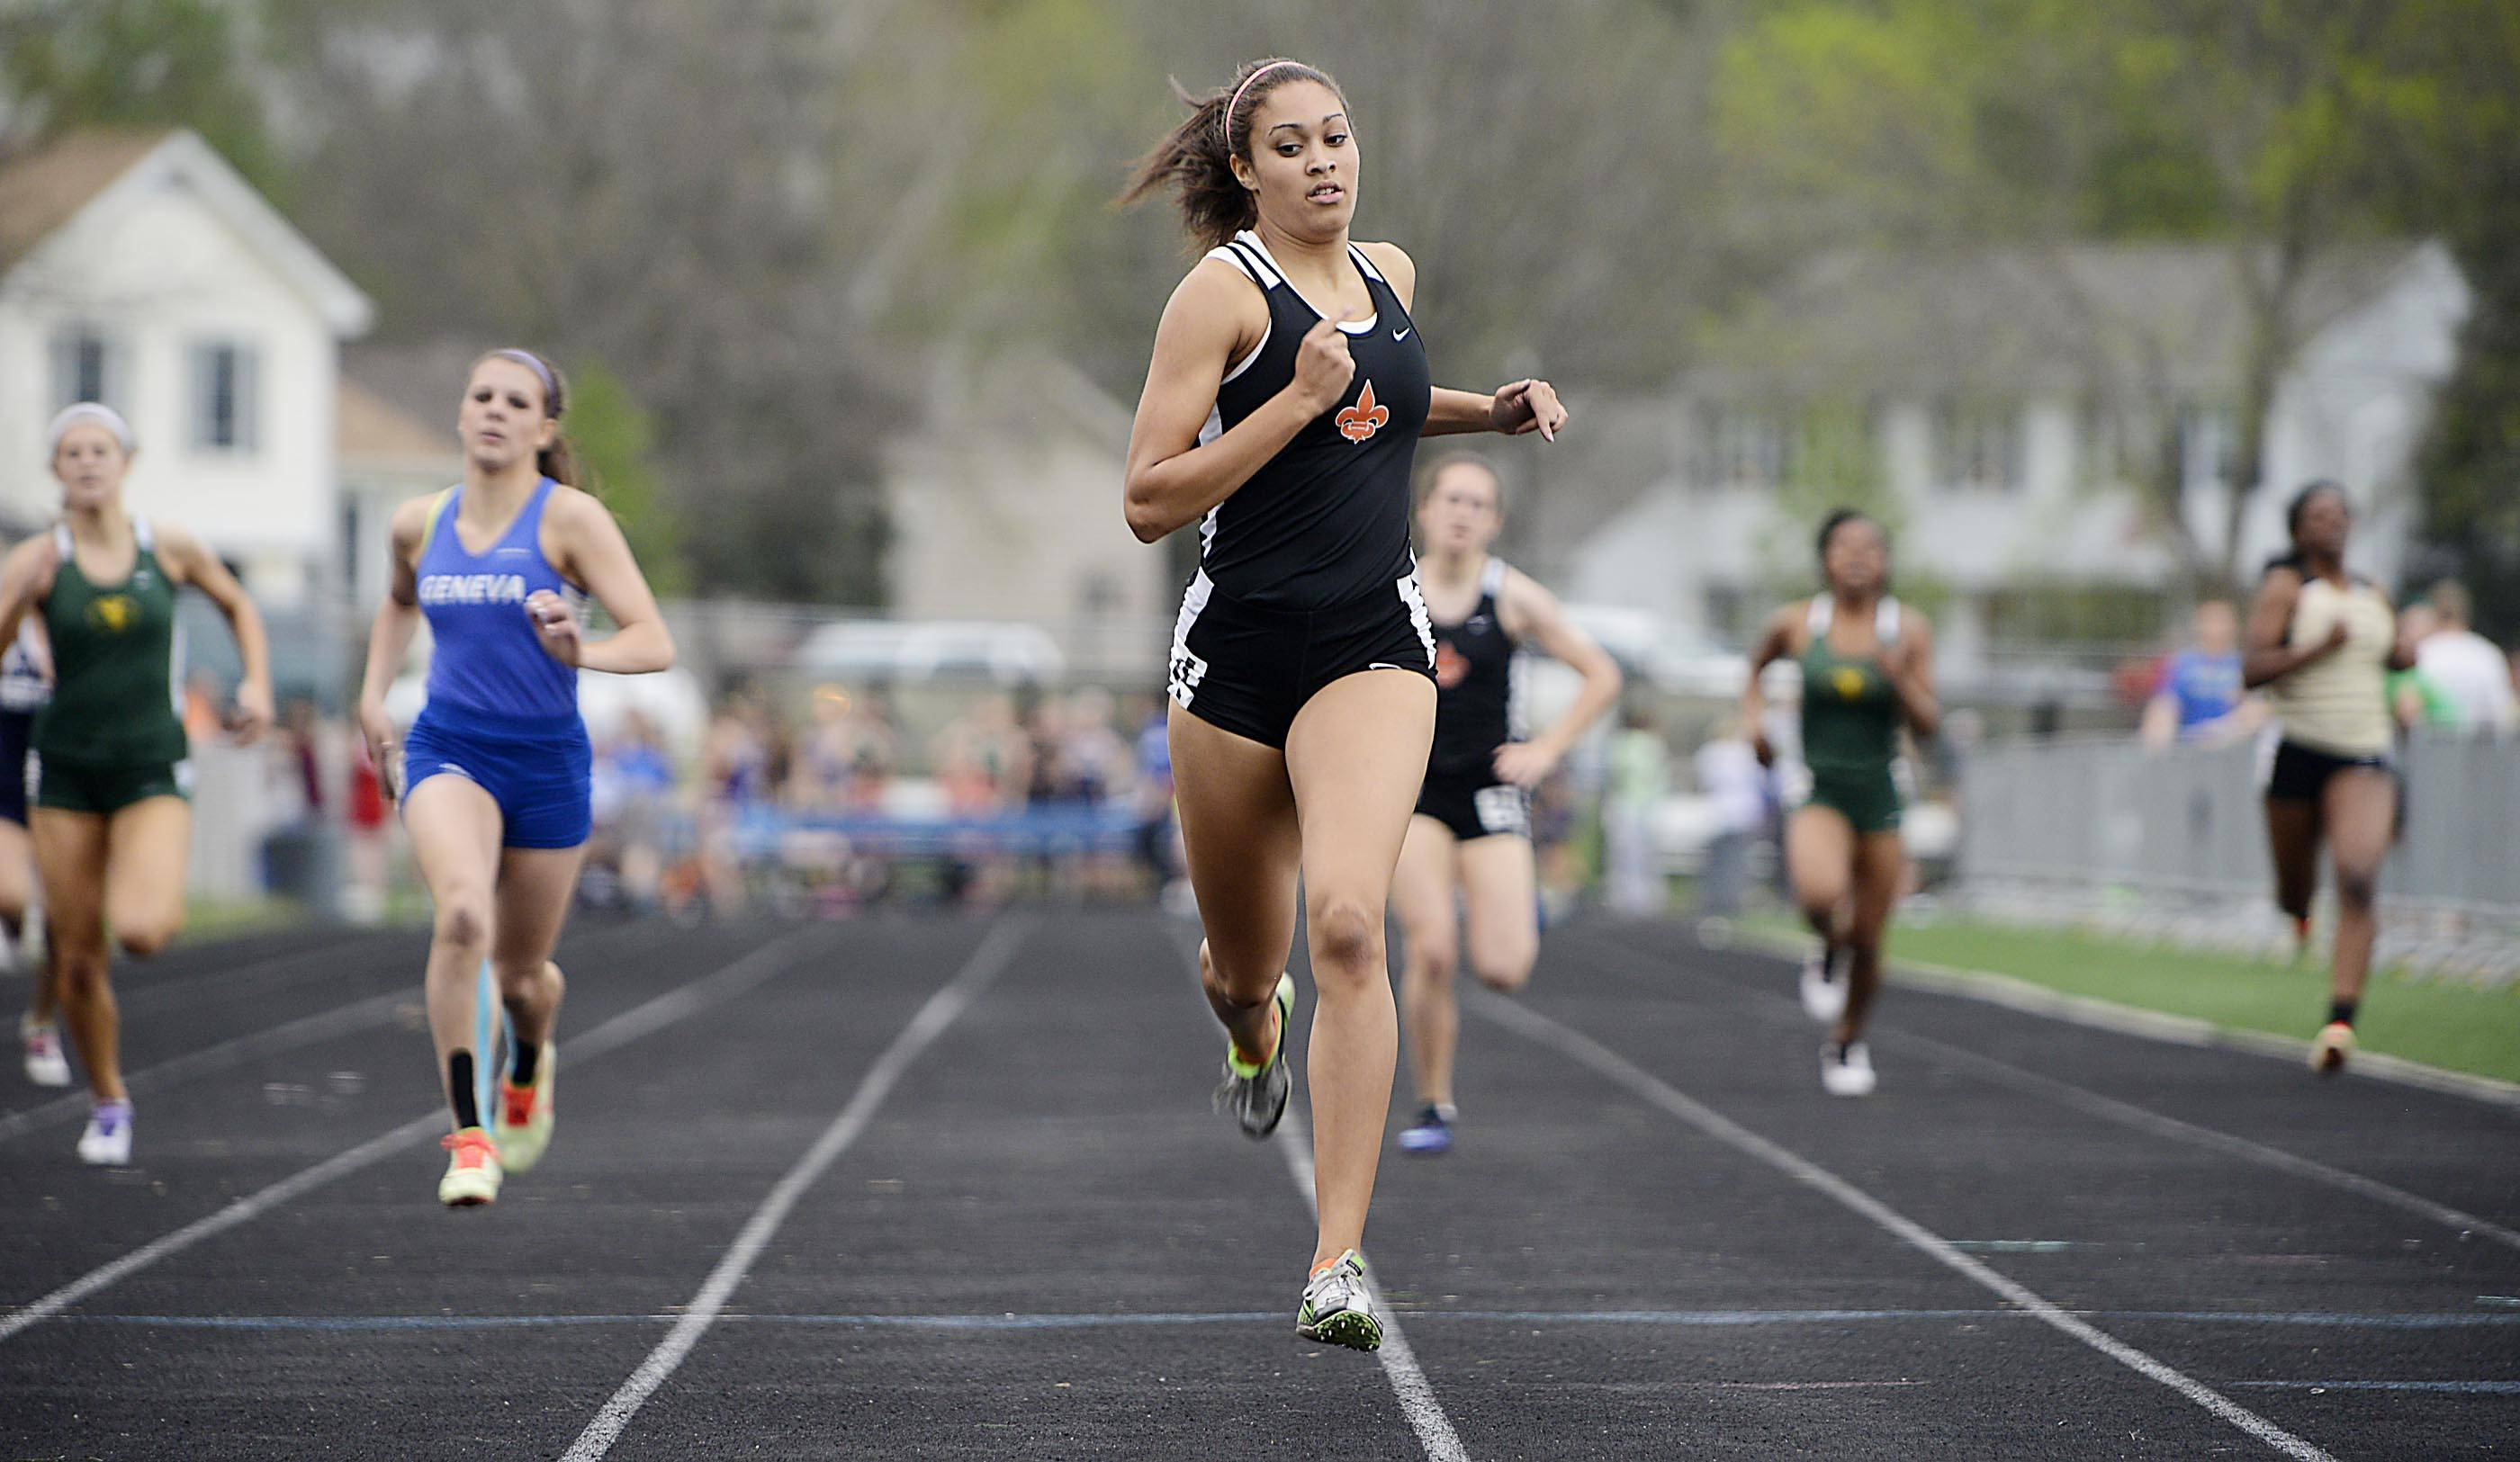 St. Charles East's Jordan Shead wins the 400 meter run Thursday at the Upstate Eight Conference girls track meet at Geneva High School.